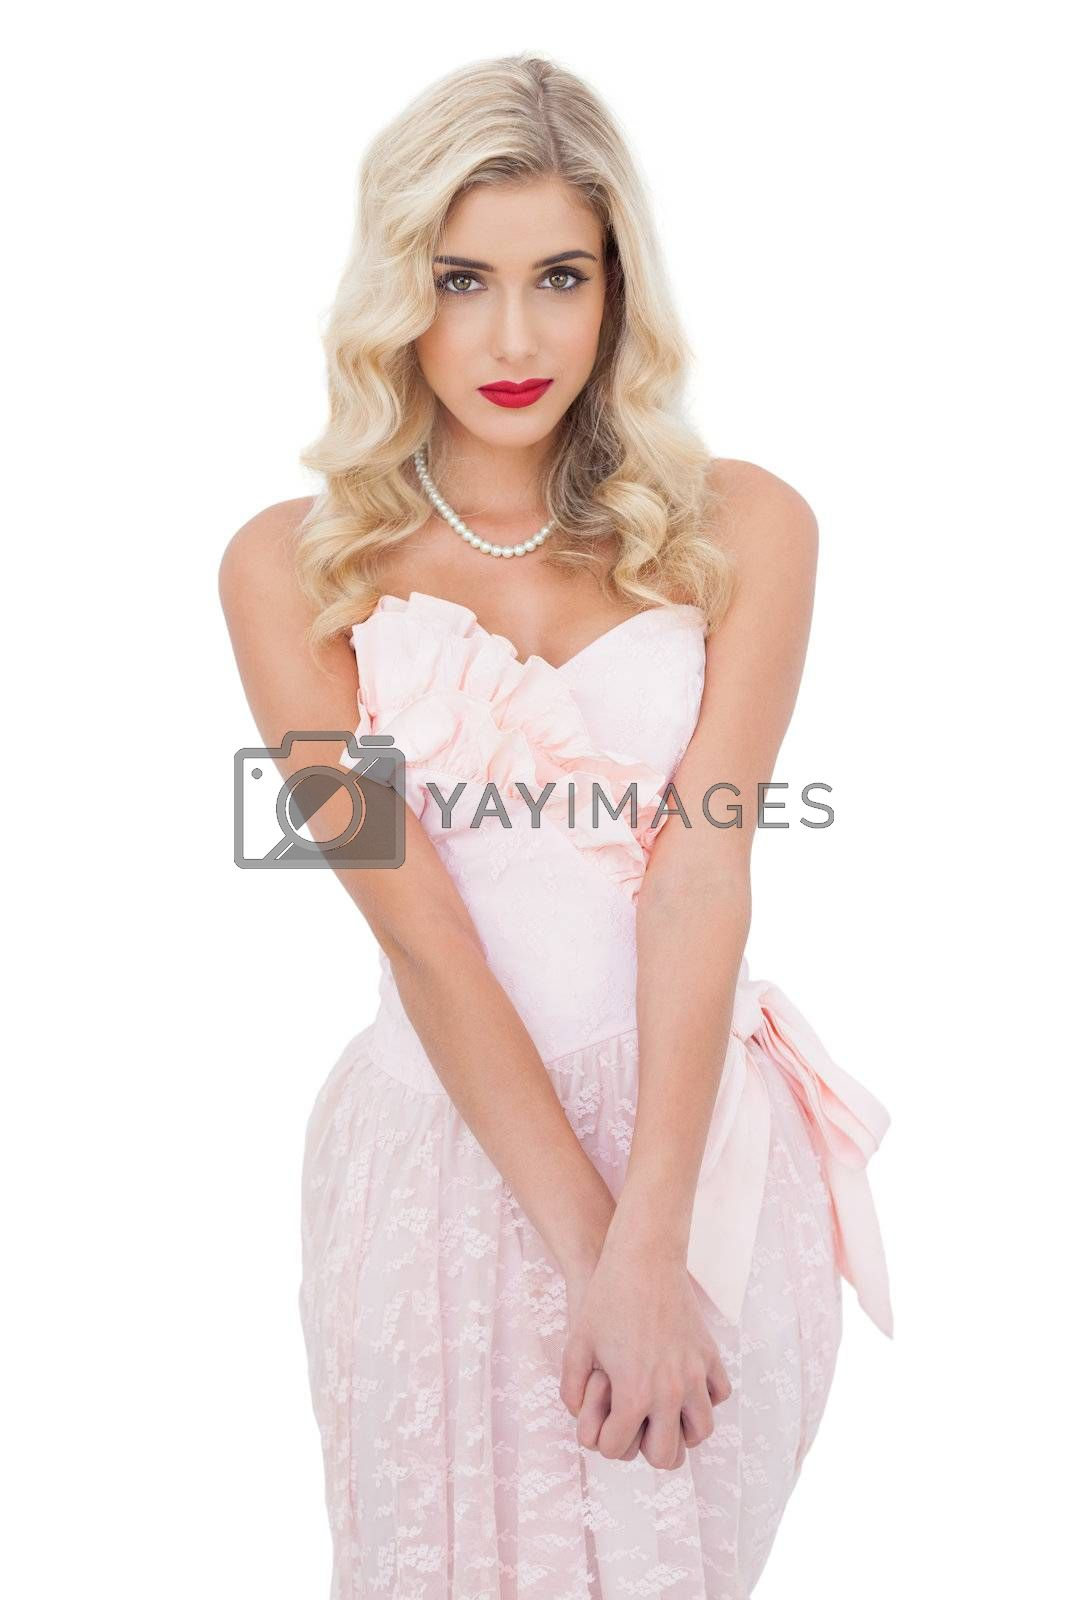 Unsmiling blonde model in pink dress posing looking at camera and holding her hands by Wavebreakmedia